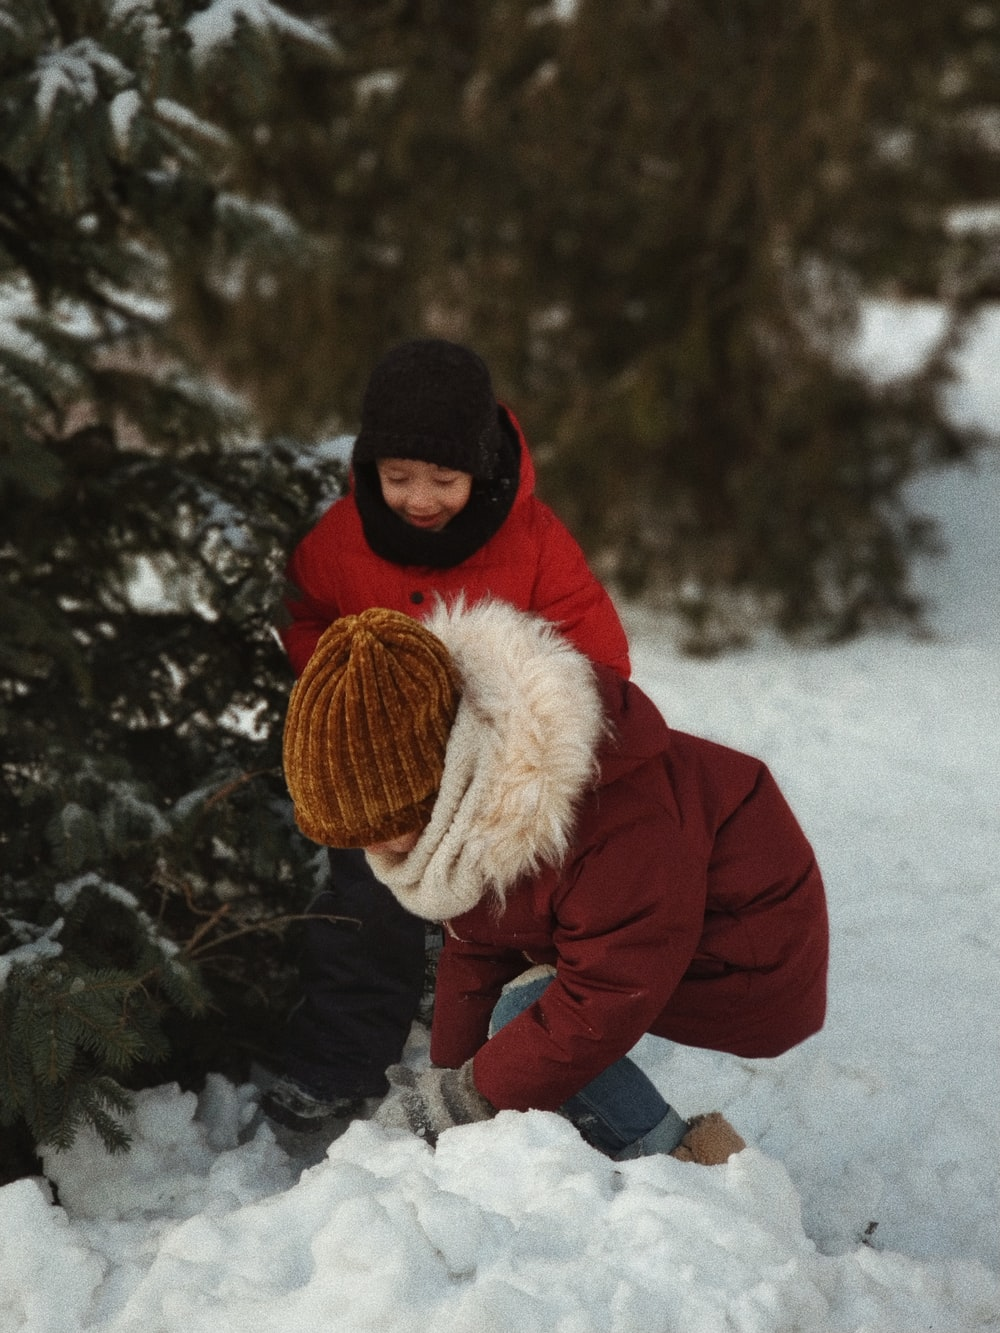 two children playing with snow near tree